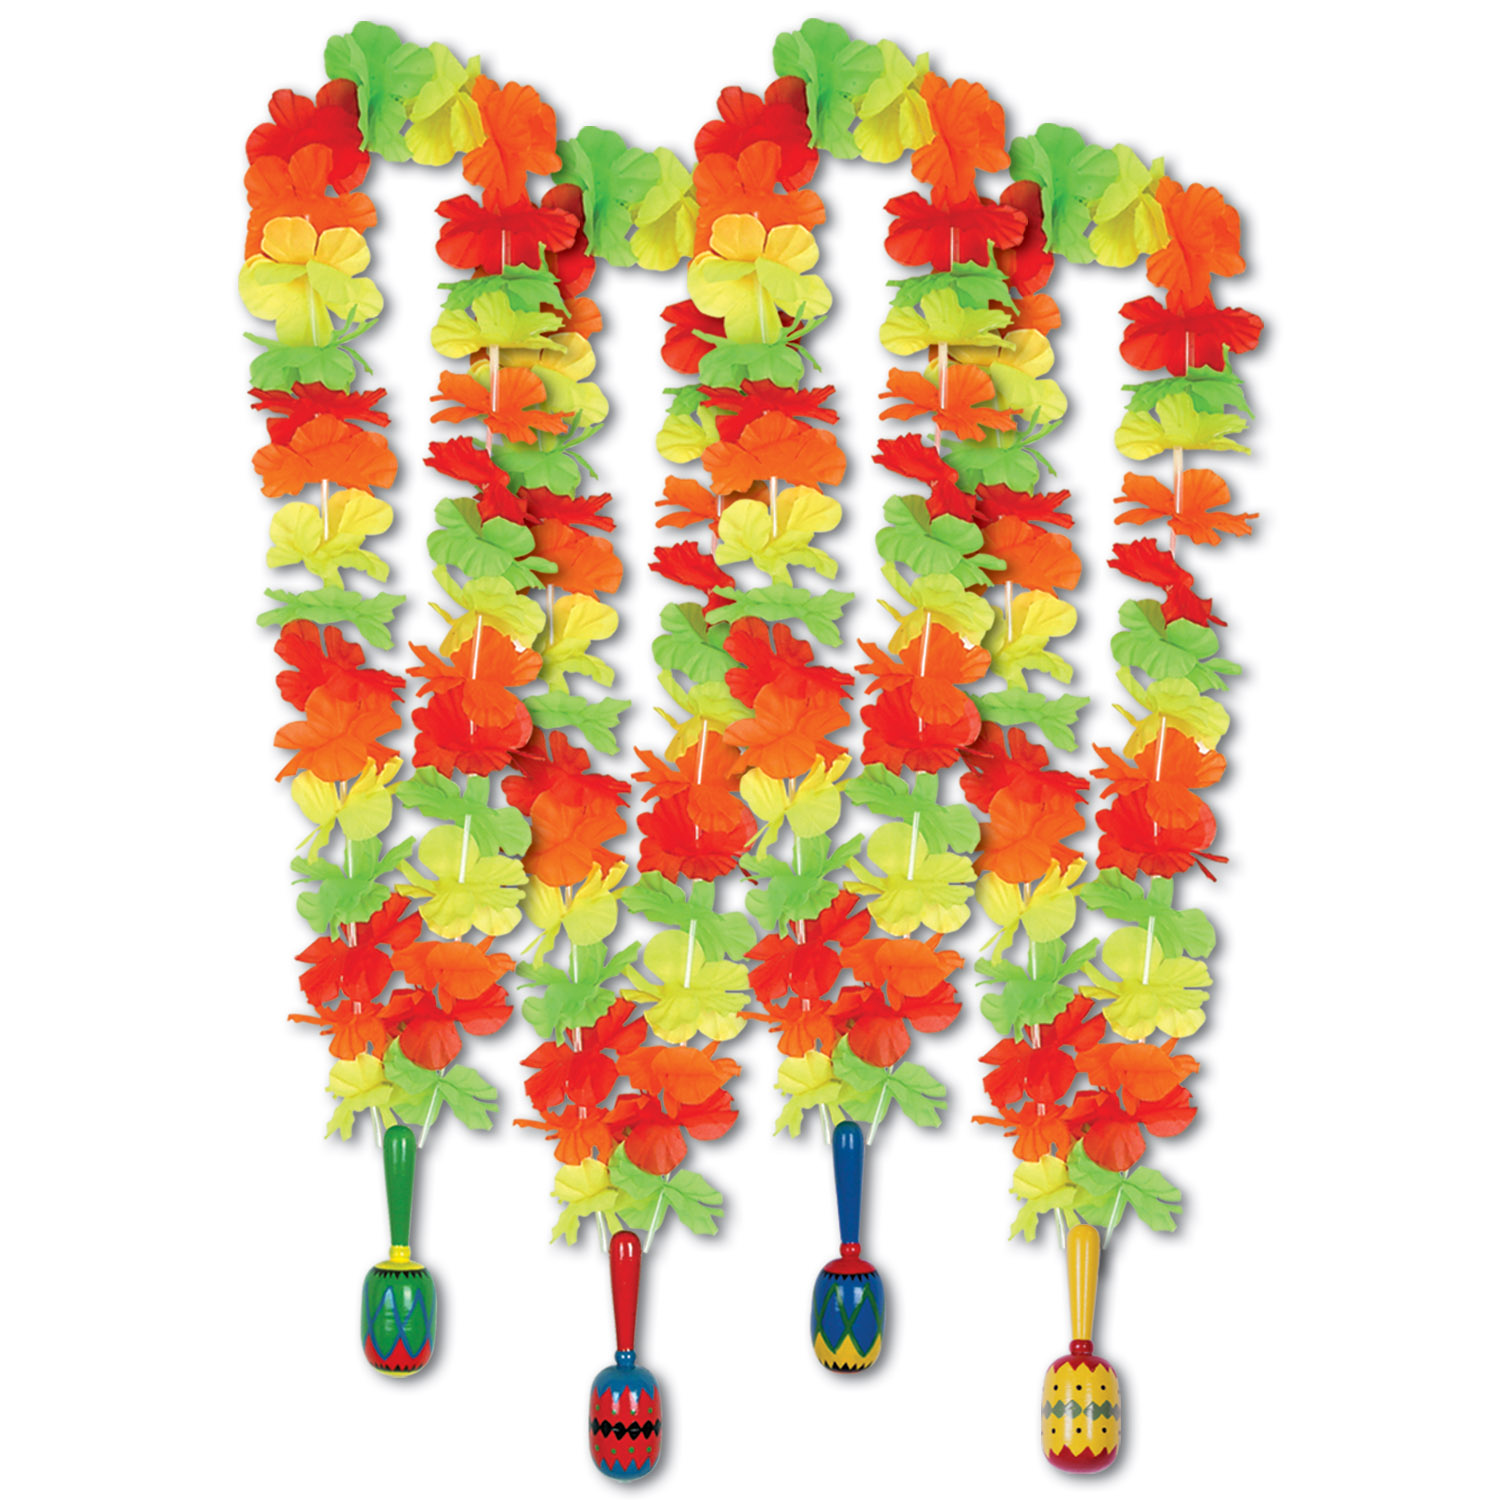 Fiesta Lei w/Maraca Medallion (Pack of 12) Fiesta Lei with Maraca Medallion, fiesta, cinco de mayo, party favor, decoration, wholesale, inexpensive, bulk